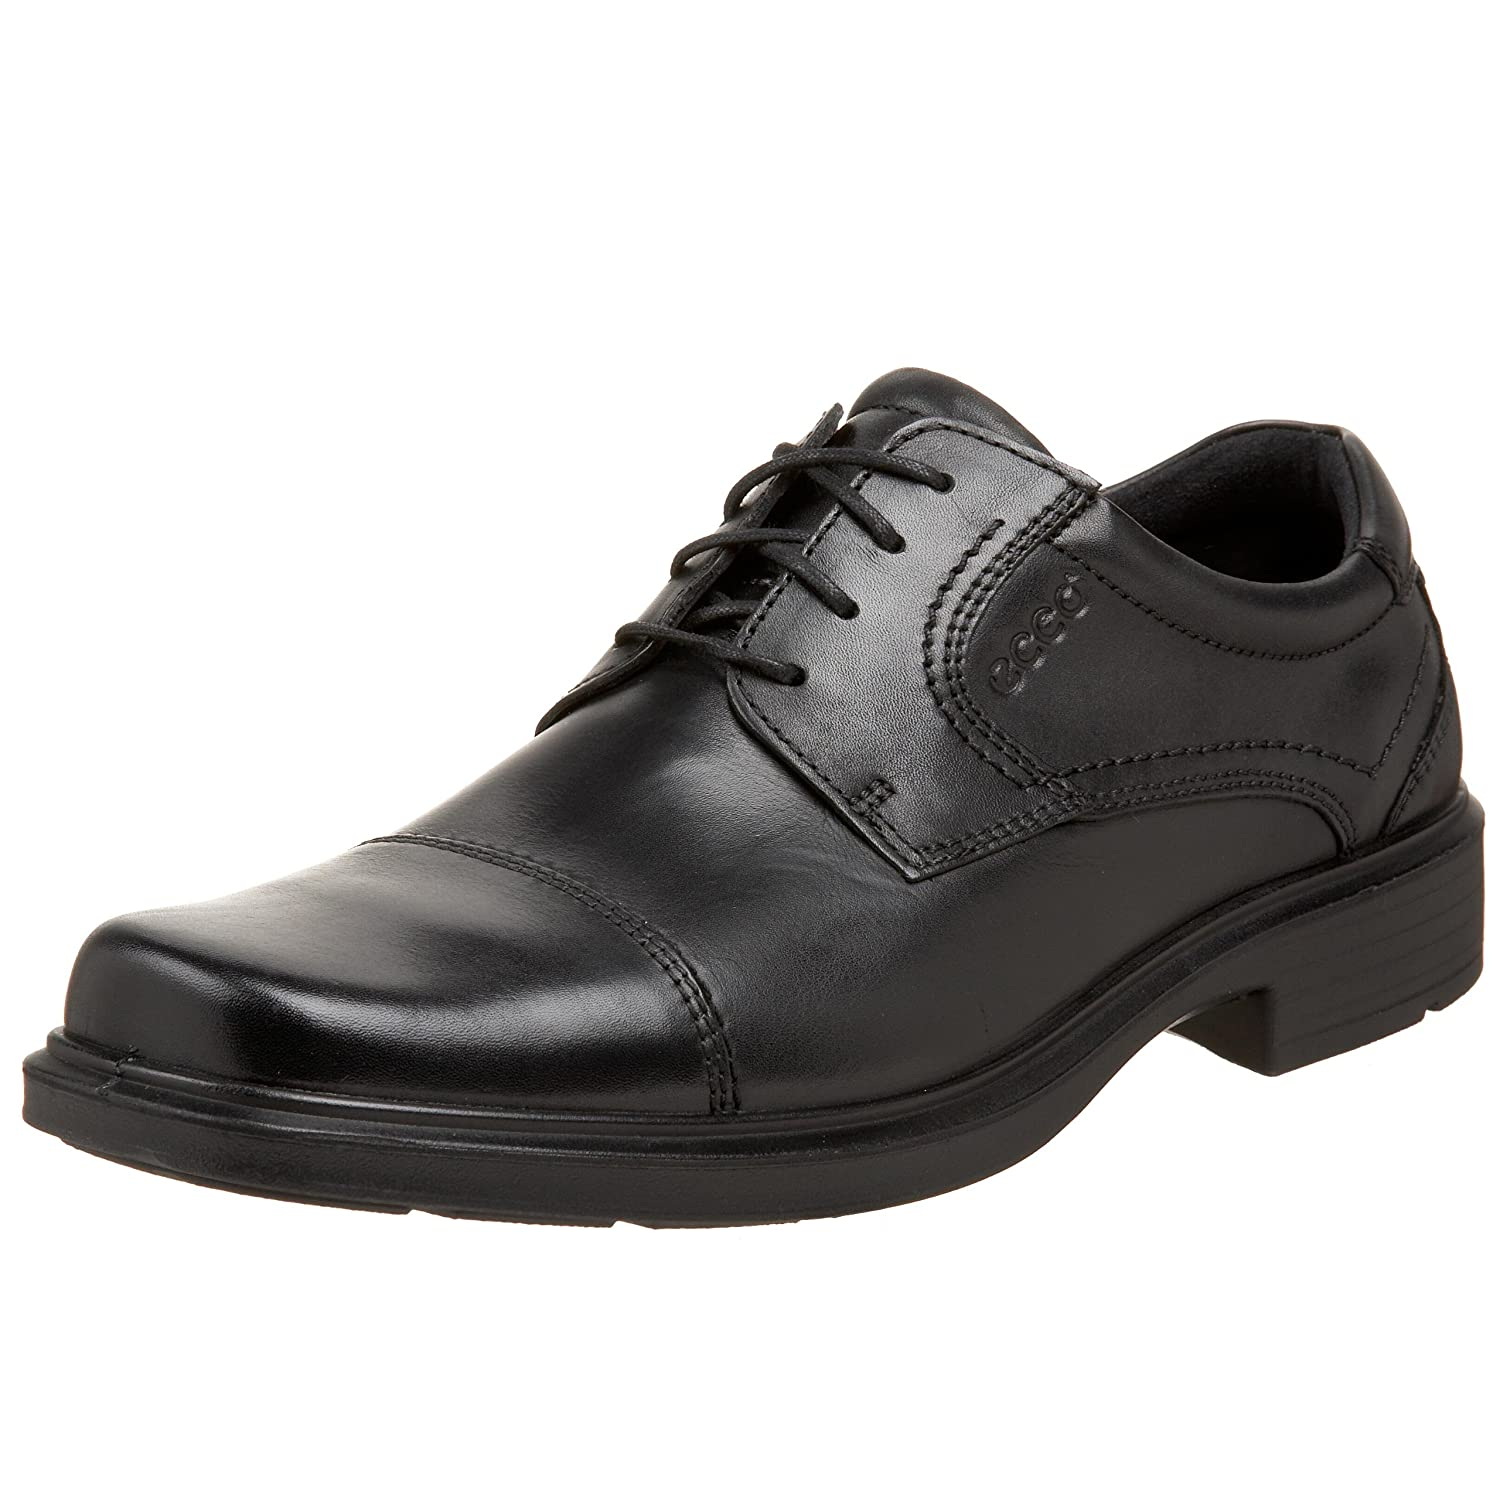 Bike Oxford Shoes Helsinki Cap Toe Oxford